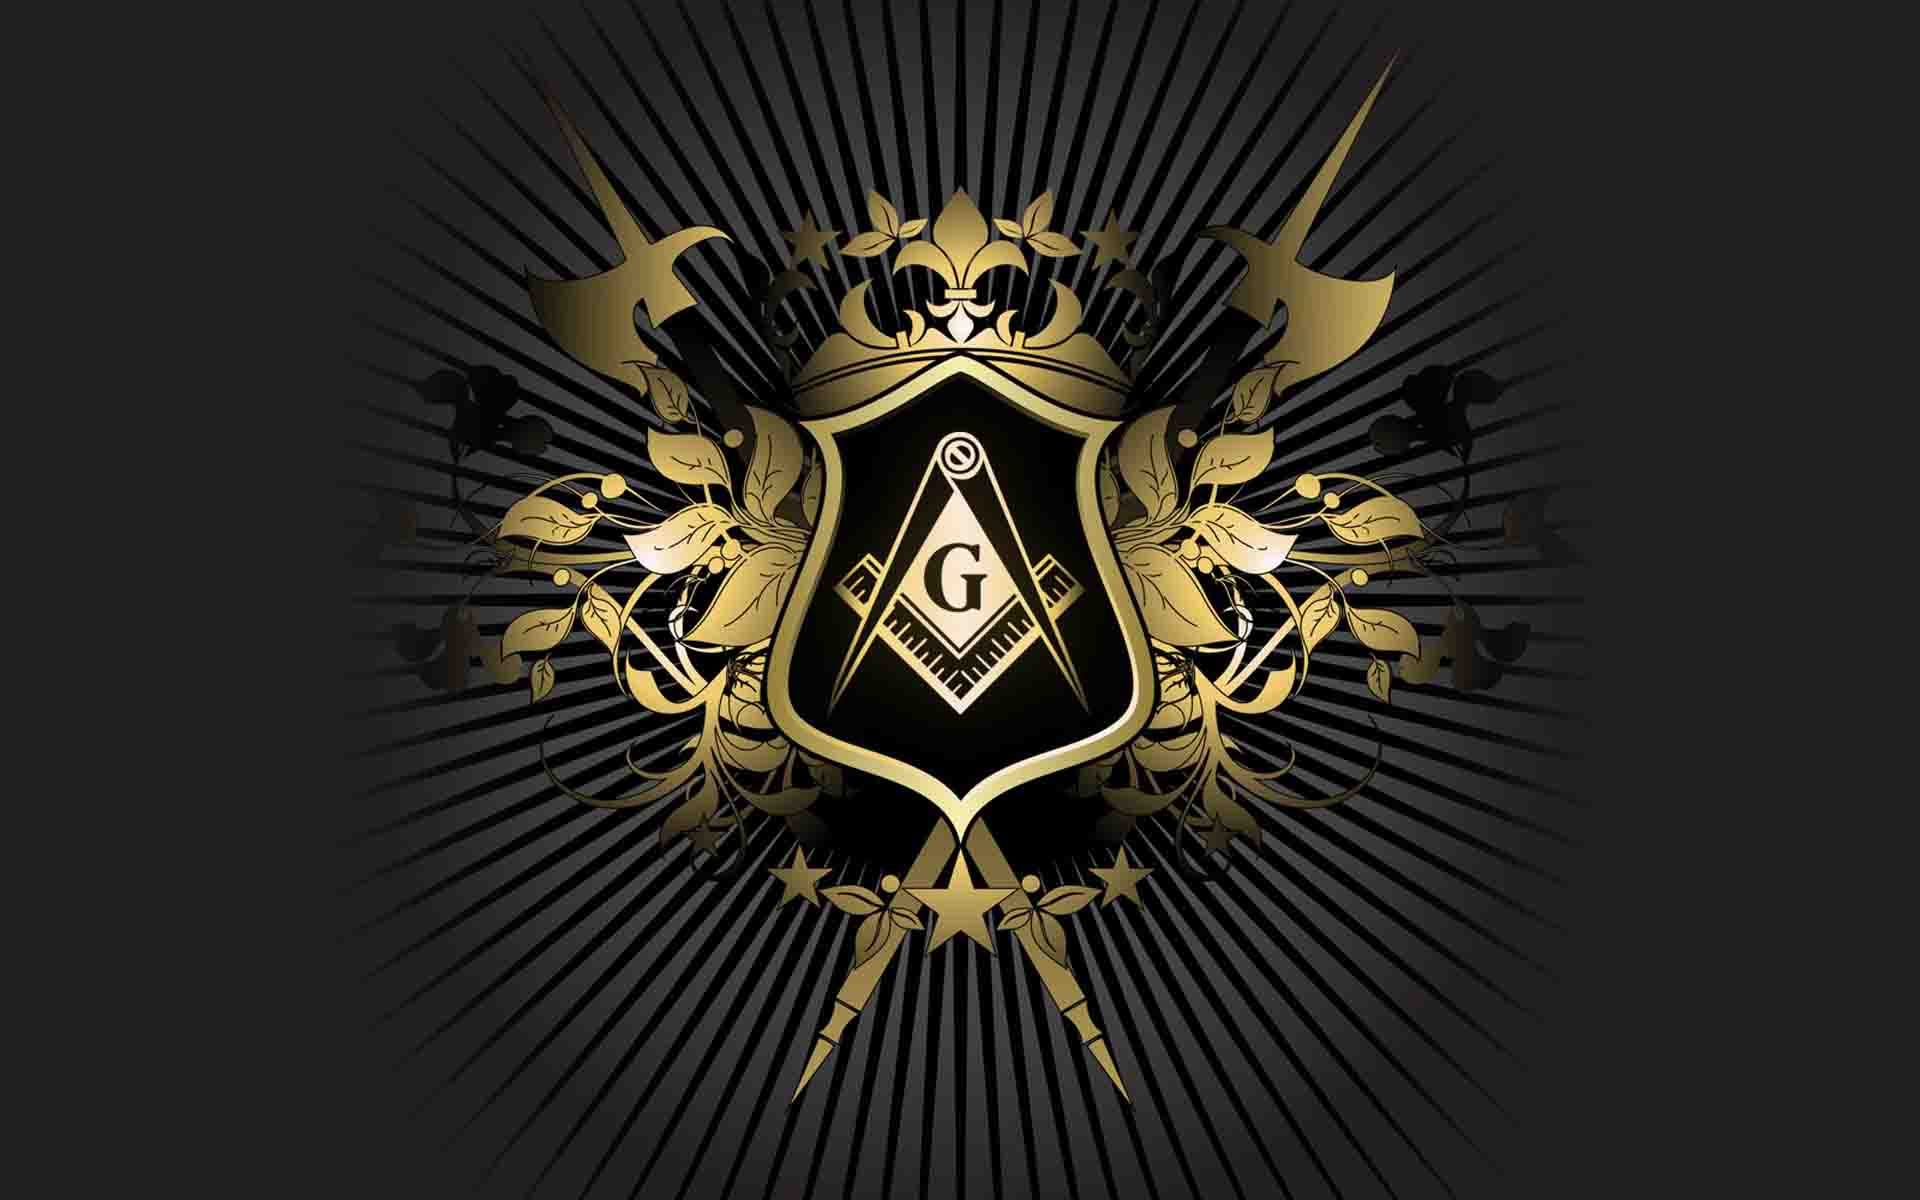 Manly Iphone Wallpaper The Roots Of Freemasonry Satanism And Occultism Truth